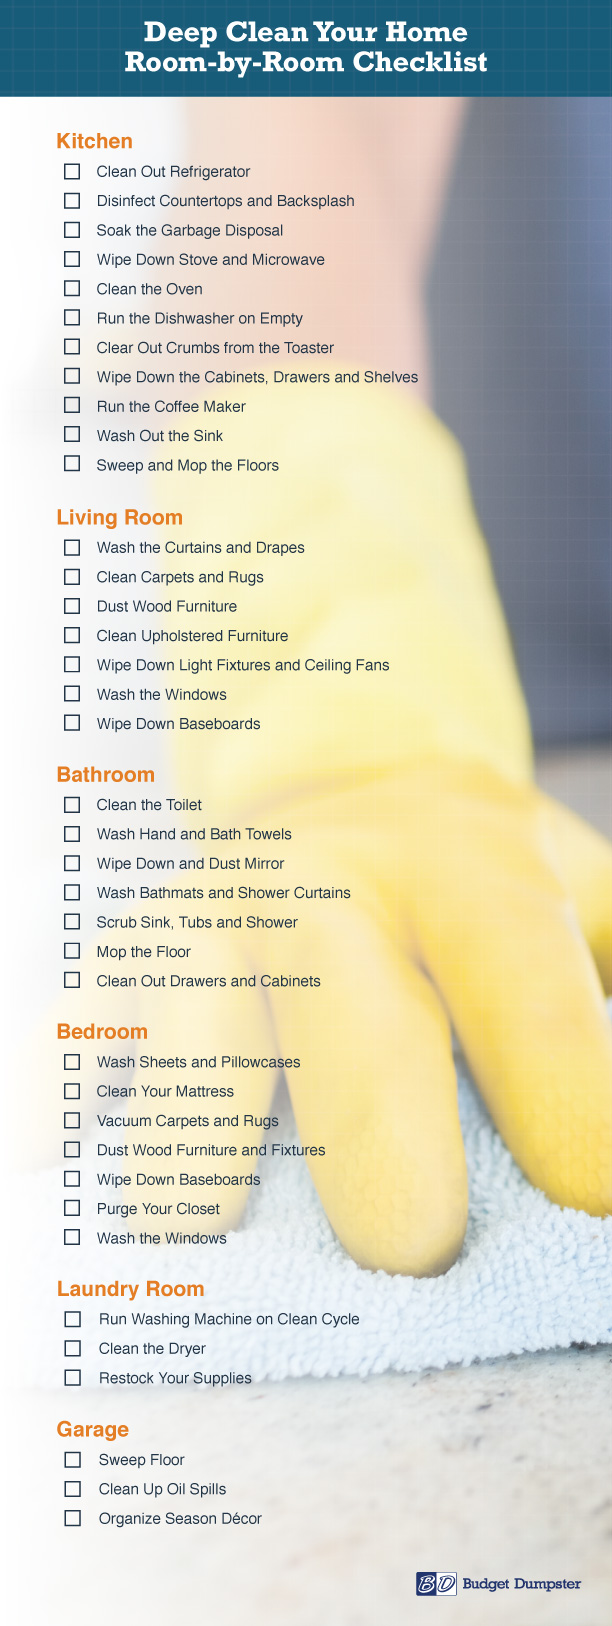 Deep Cleaning Checklist for Each Room in the House